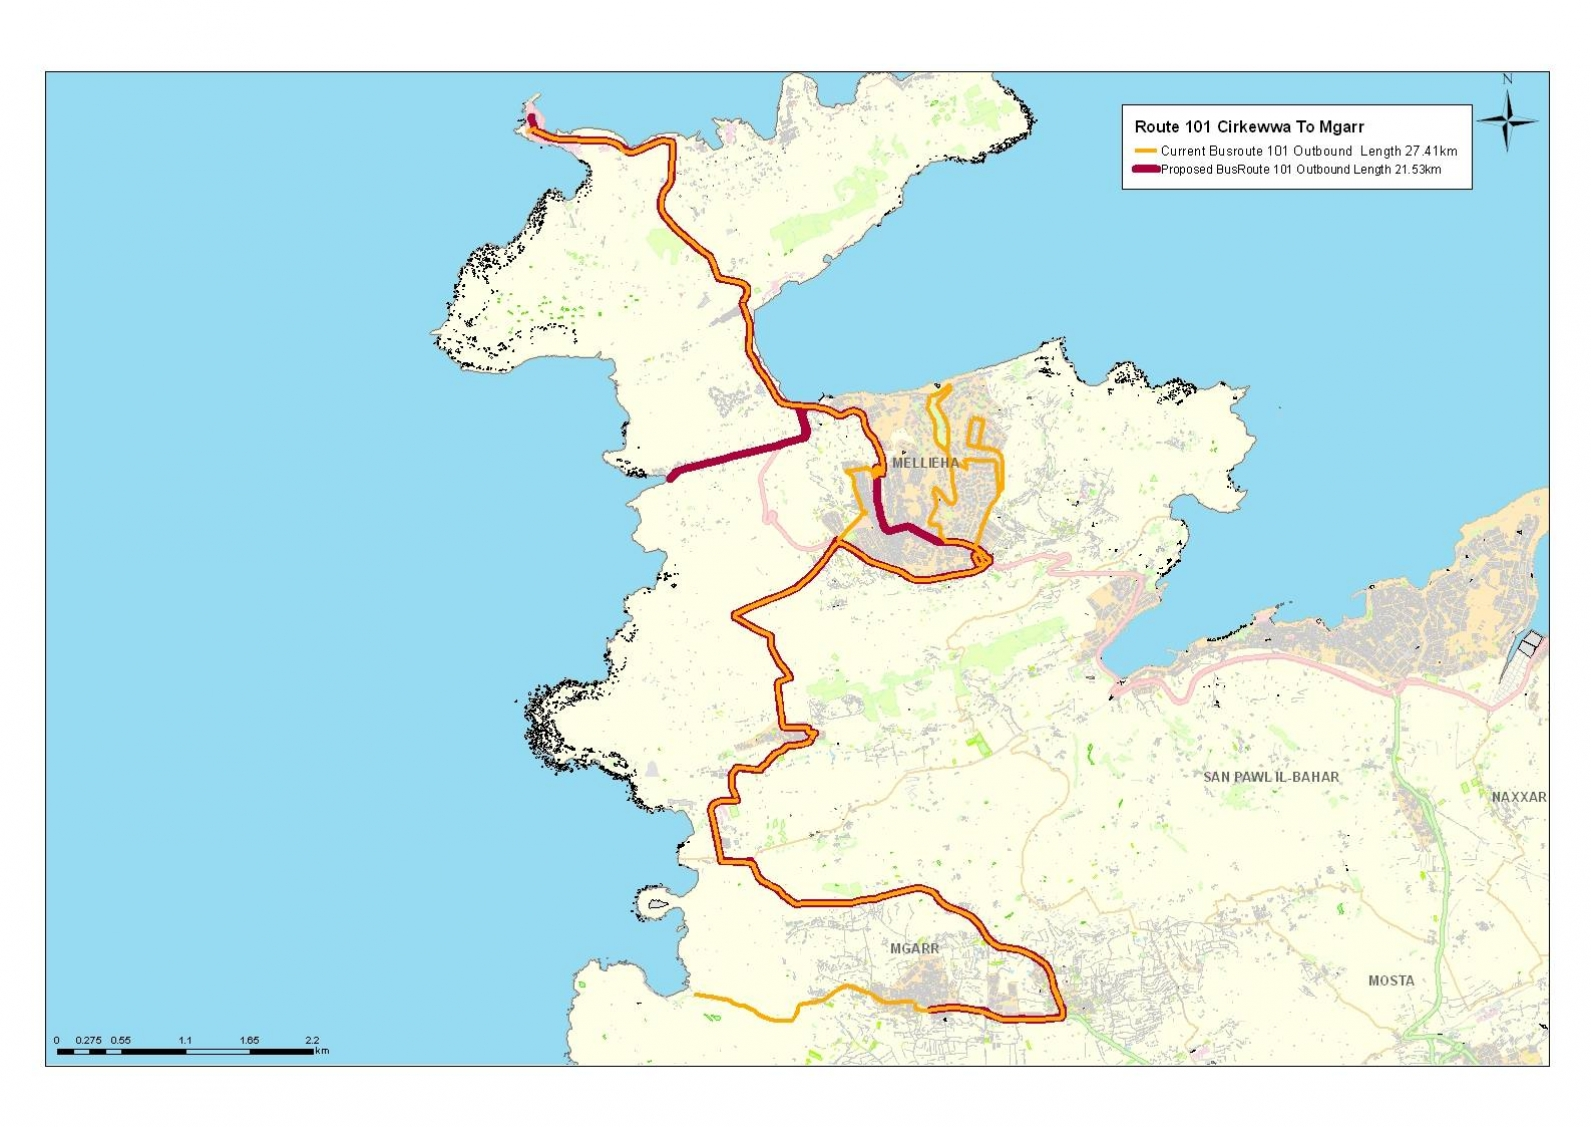 Land-current-network-routes-and-schedules-Cirkewwa-mellieha-sliema-8